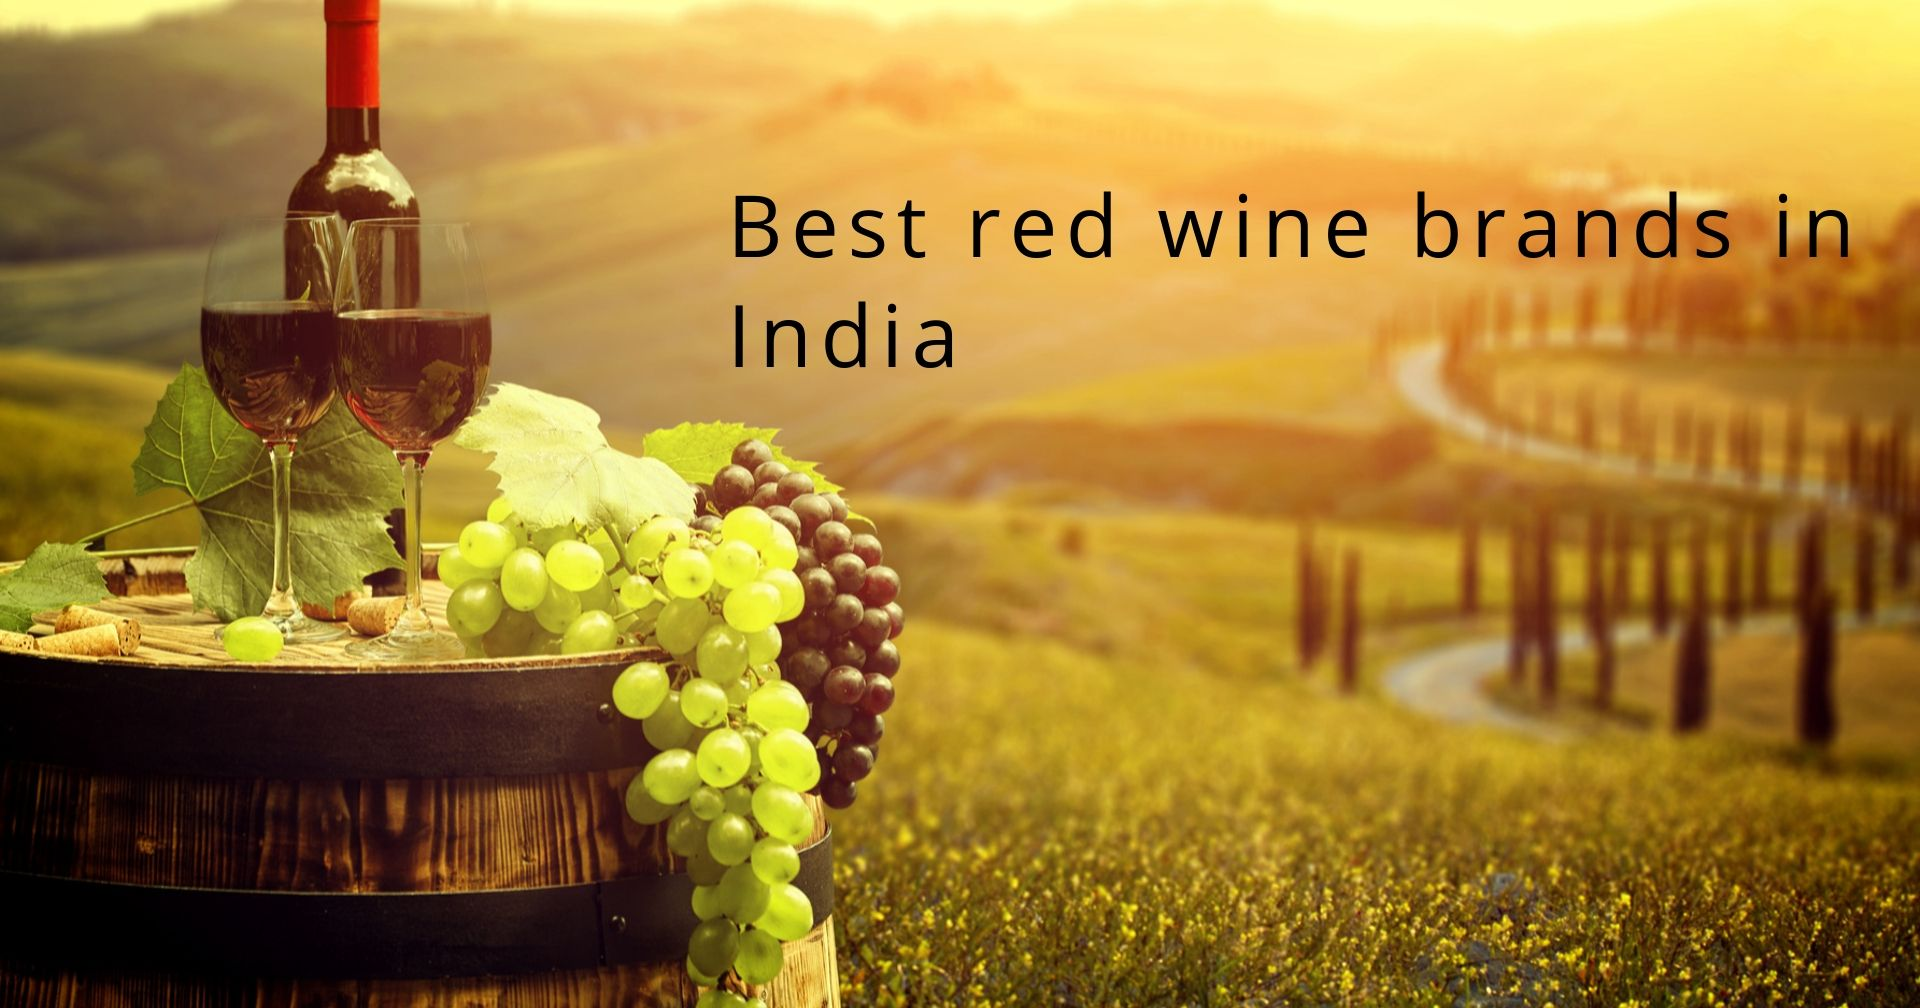 Best red wine brands in India